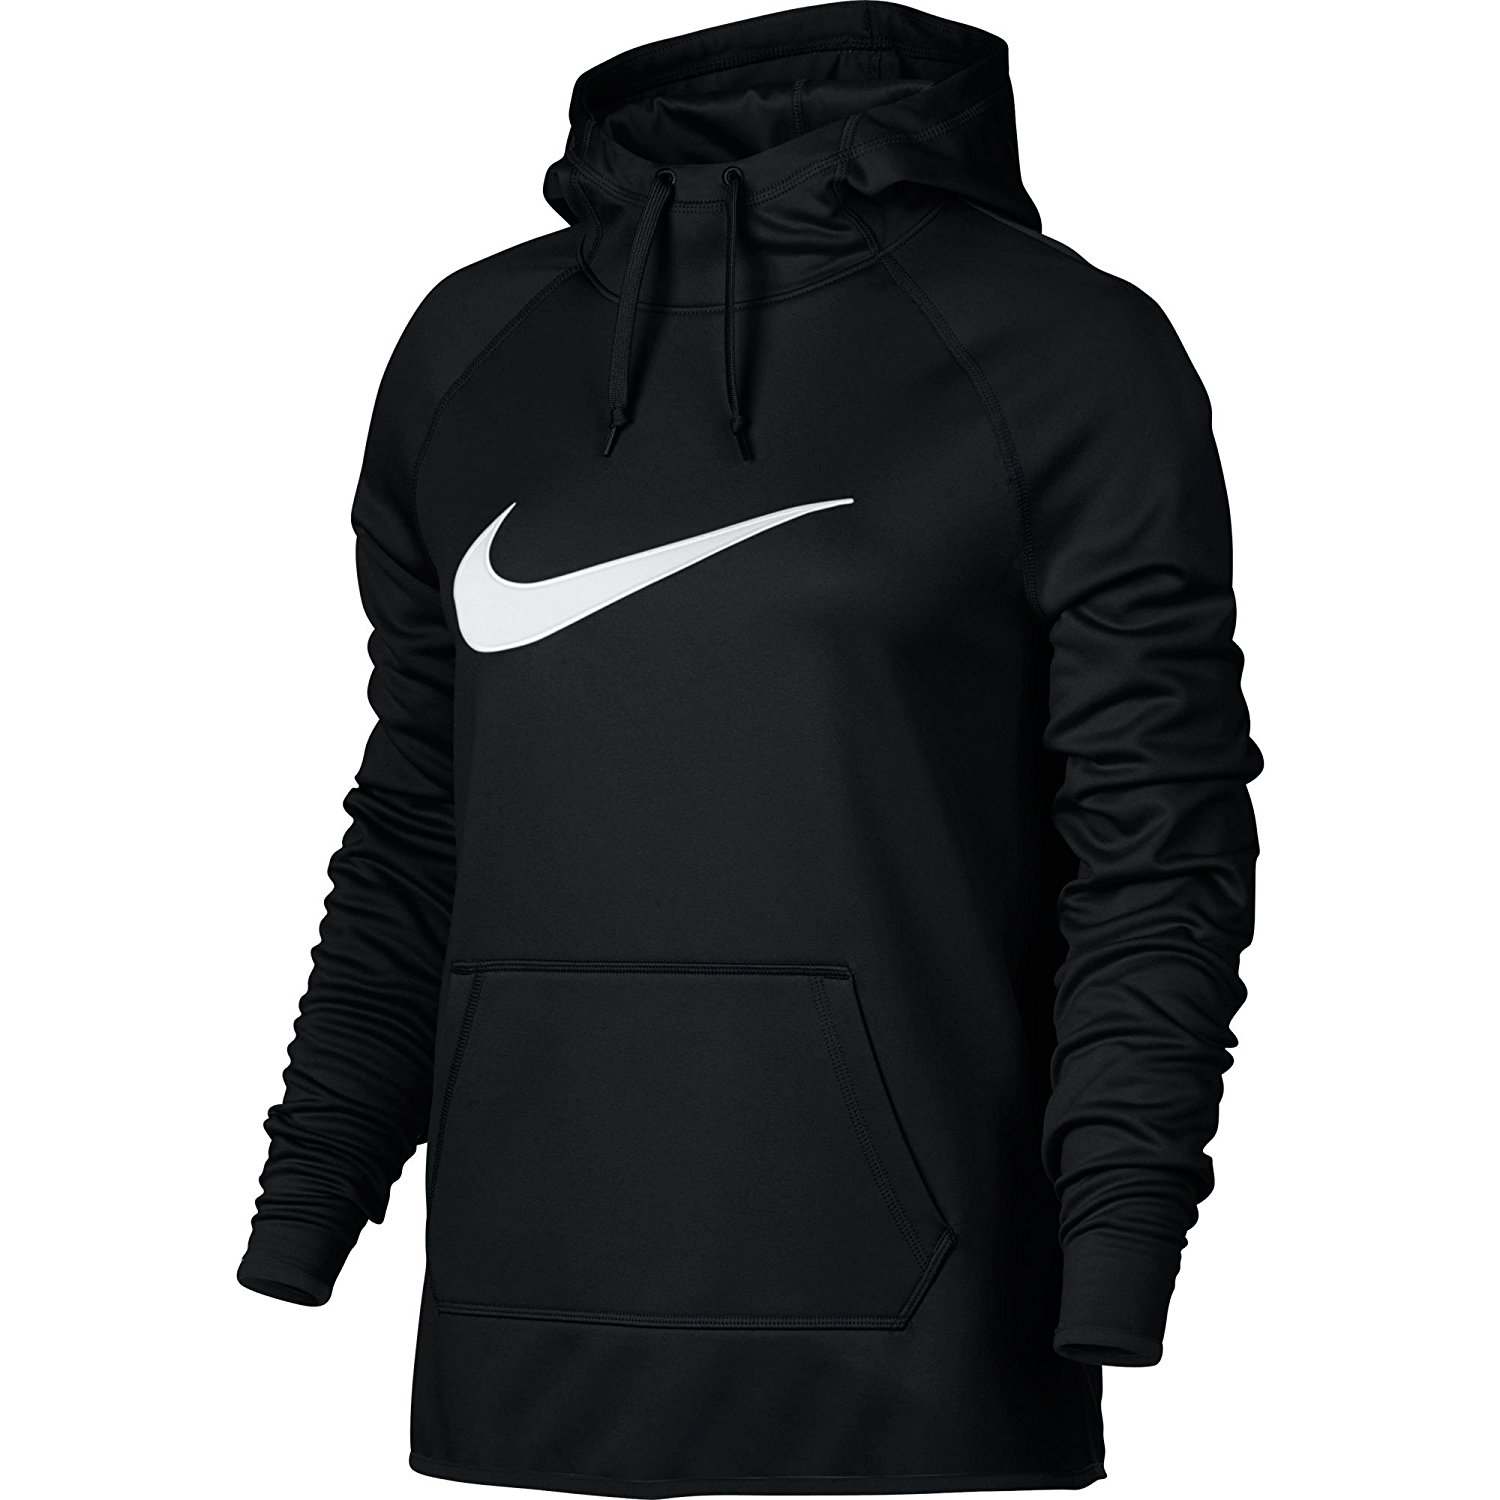 039e8ef1e746 Get Quotations · Women s Nike Therma Training Hoodie